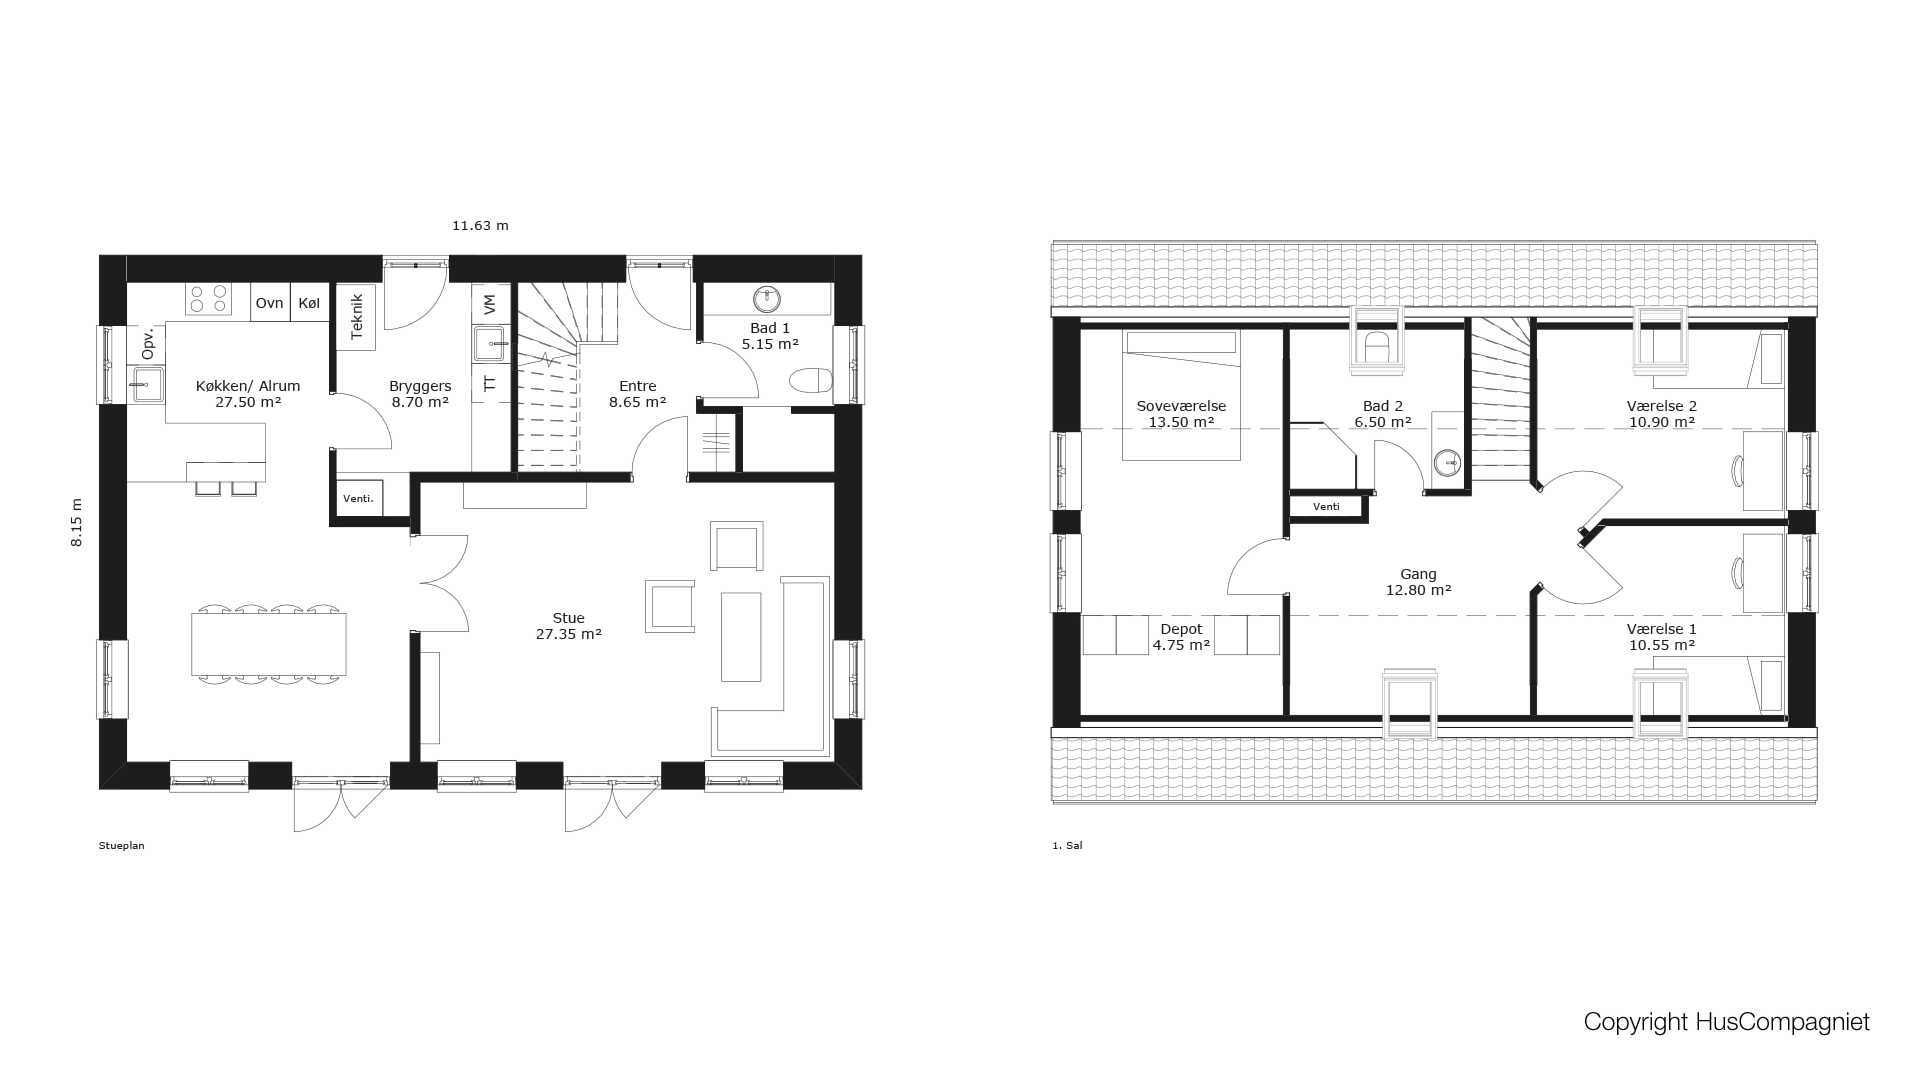 Picture of: Plantegning 1 5 Plan 162 M2 Huscompagniet